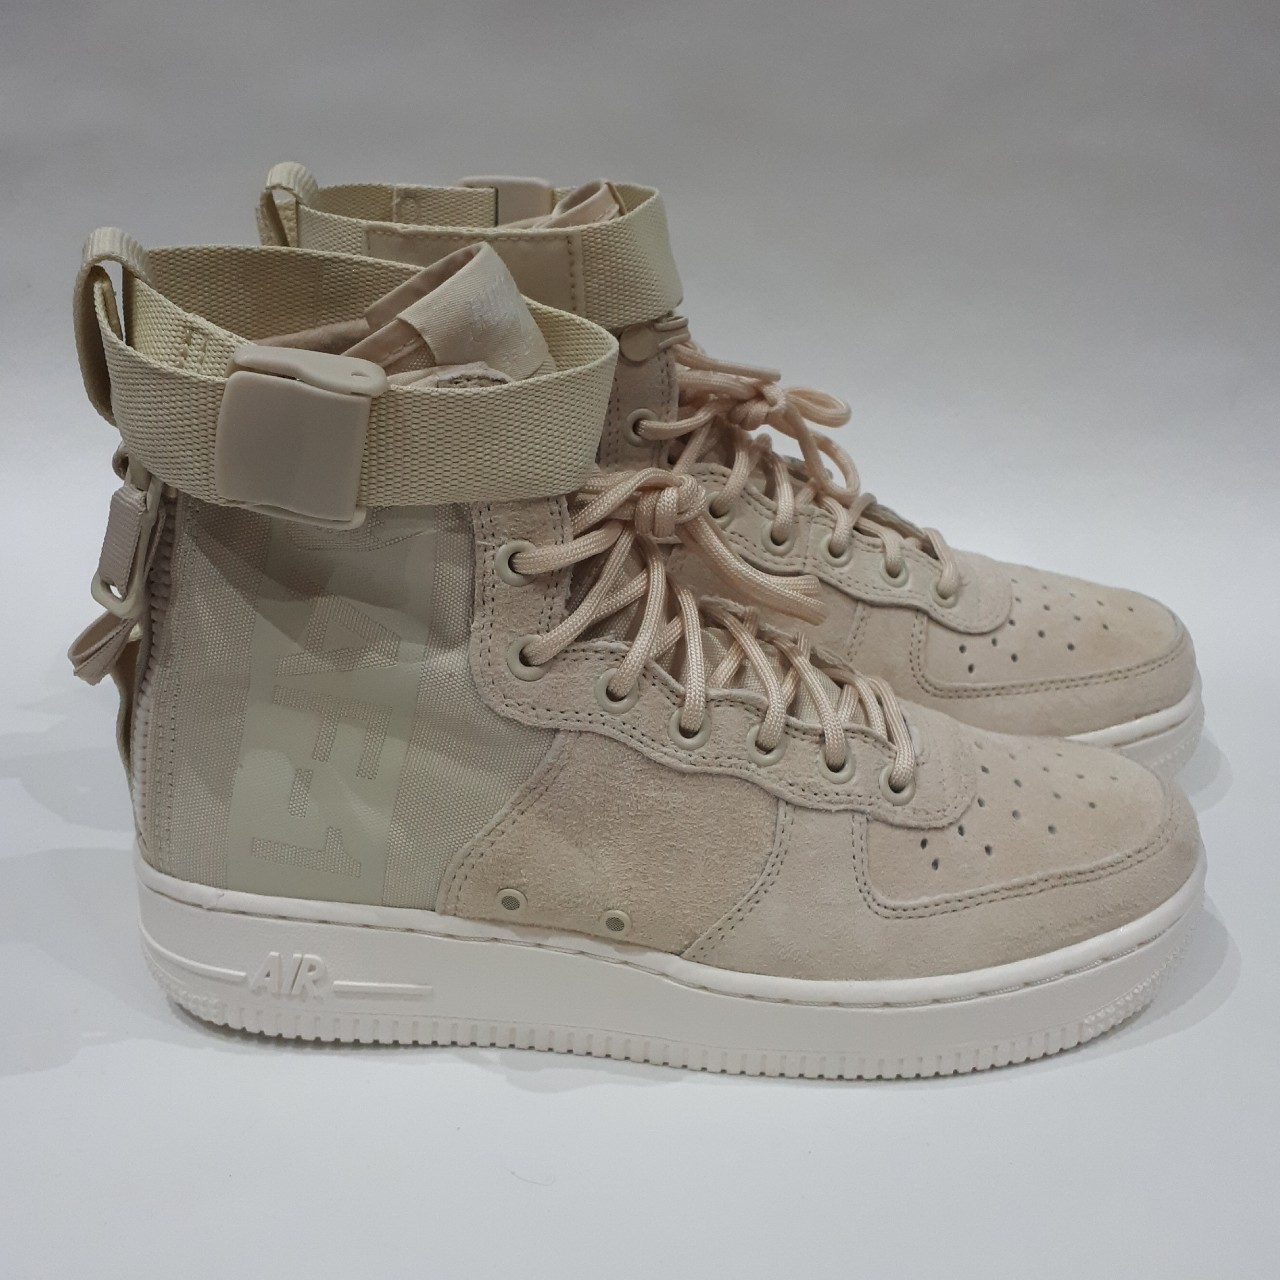 discount a7d51 d2391 Fossil/Sail Womens Nike SF AF1 Mid Sizes UK 5,... - Depop